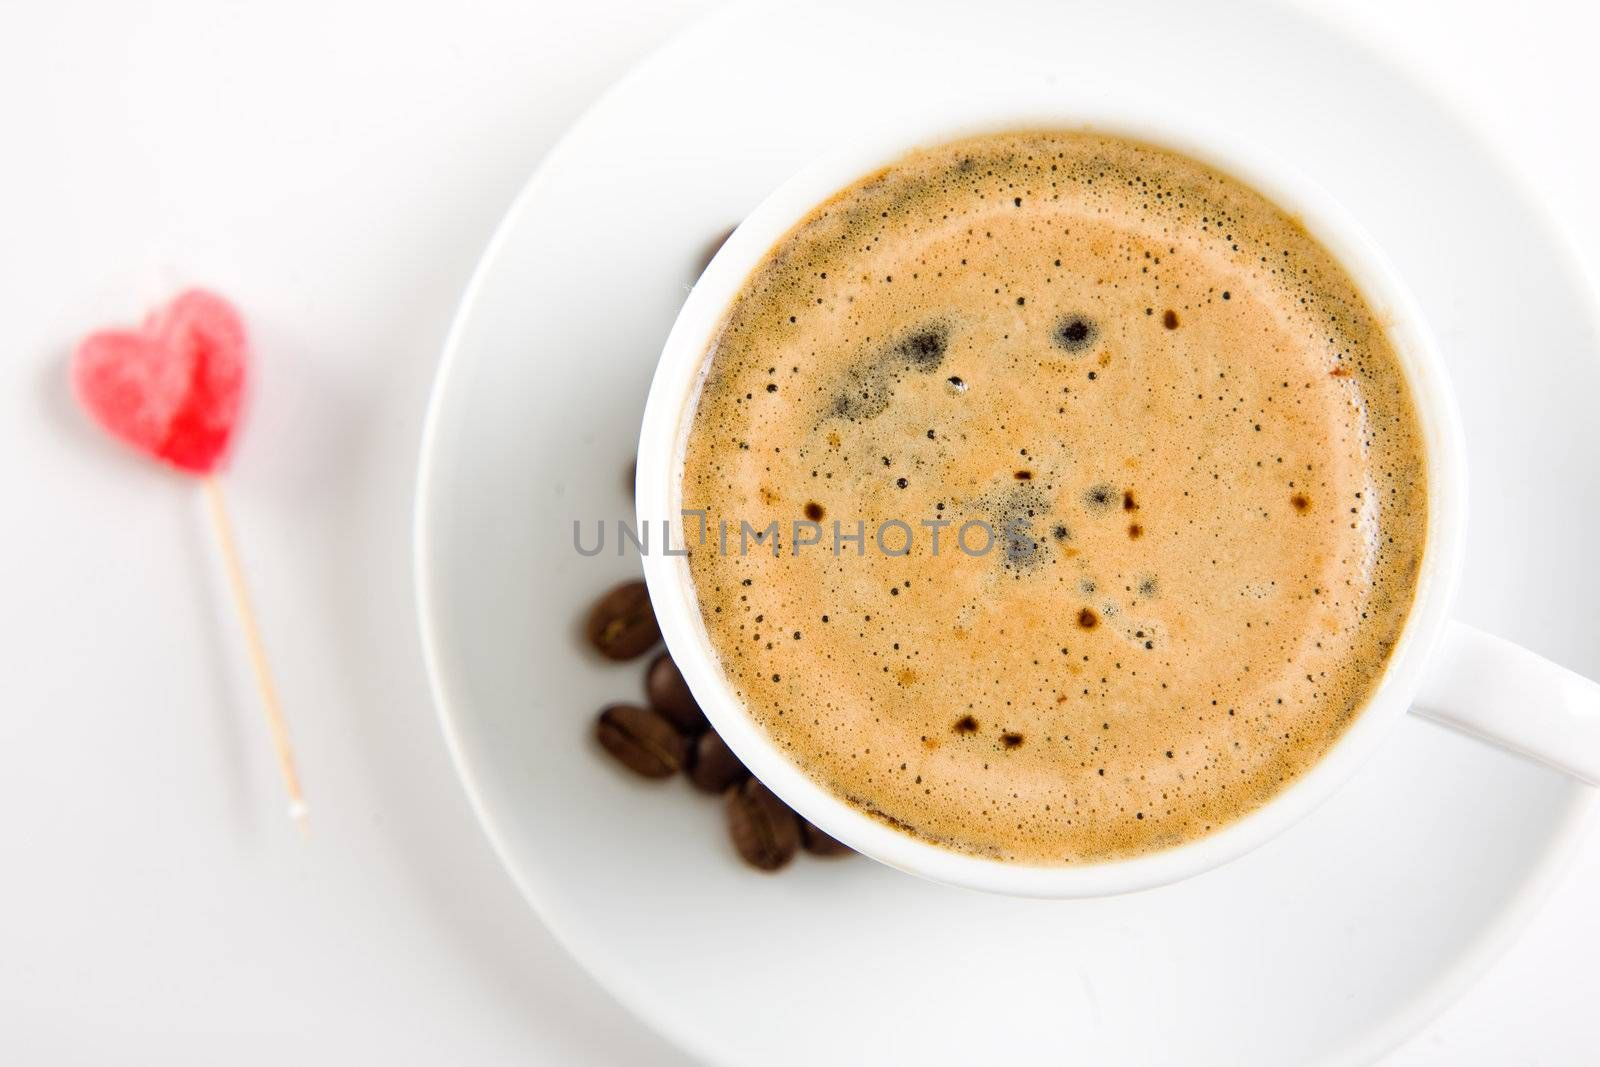 Cup of coffee on white with candy heart on background, focus on liquid